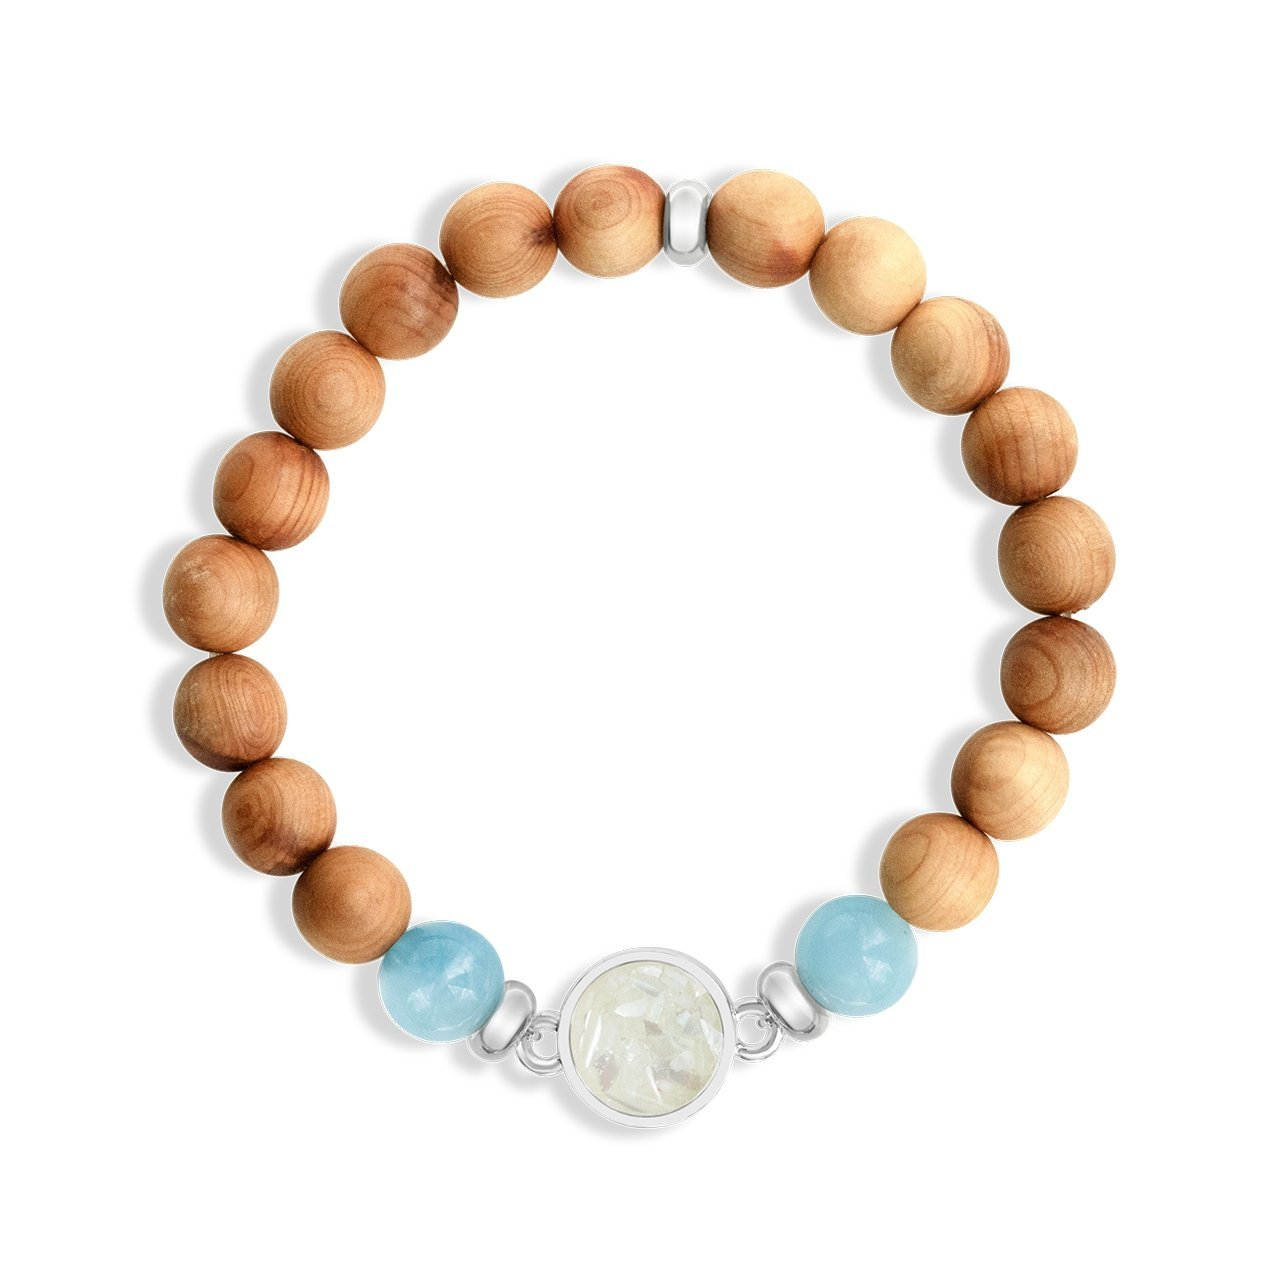 Cypress Wood Beaded Bracelet- Siesta Key Sand & Aquamarine - Molly's! A Chic and Unique Boutique